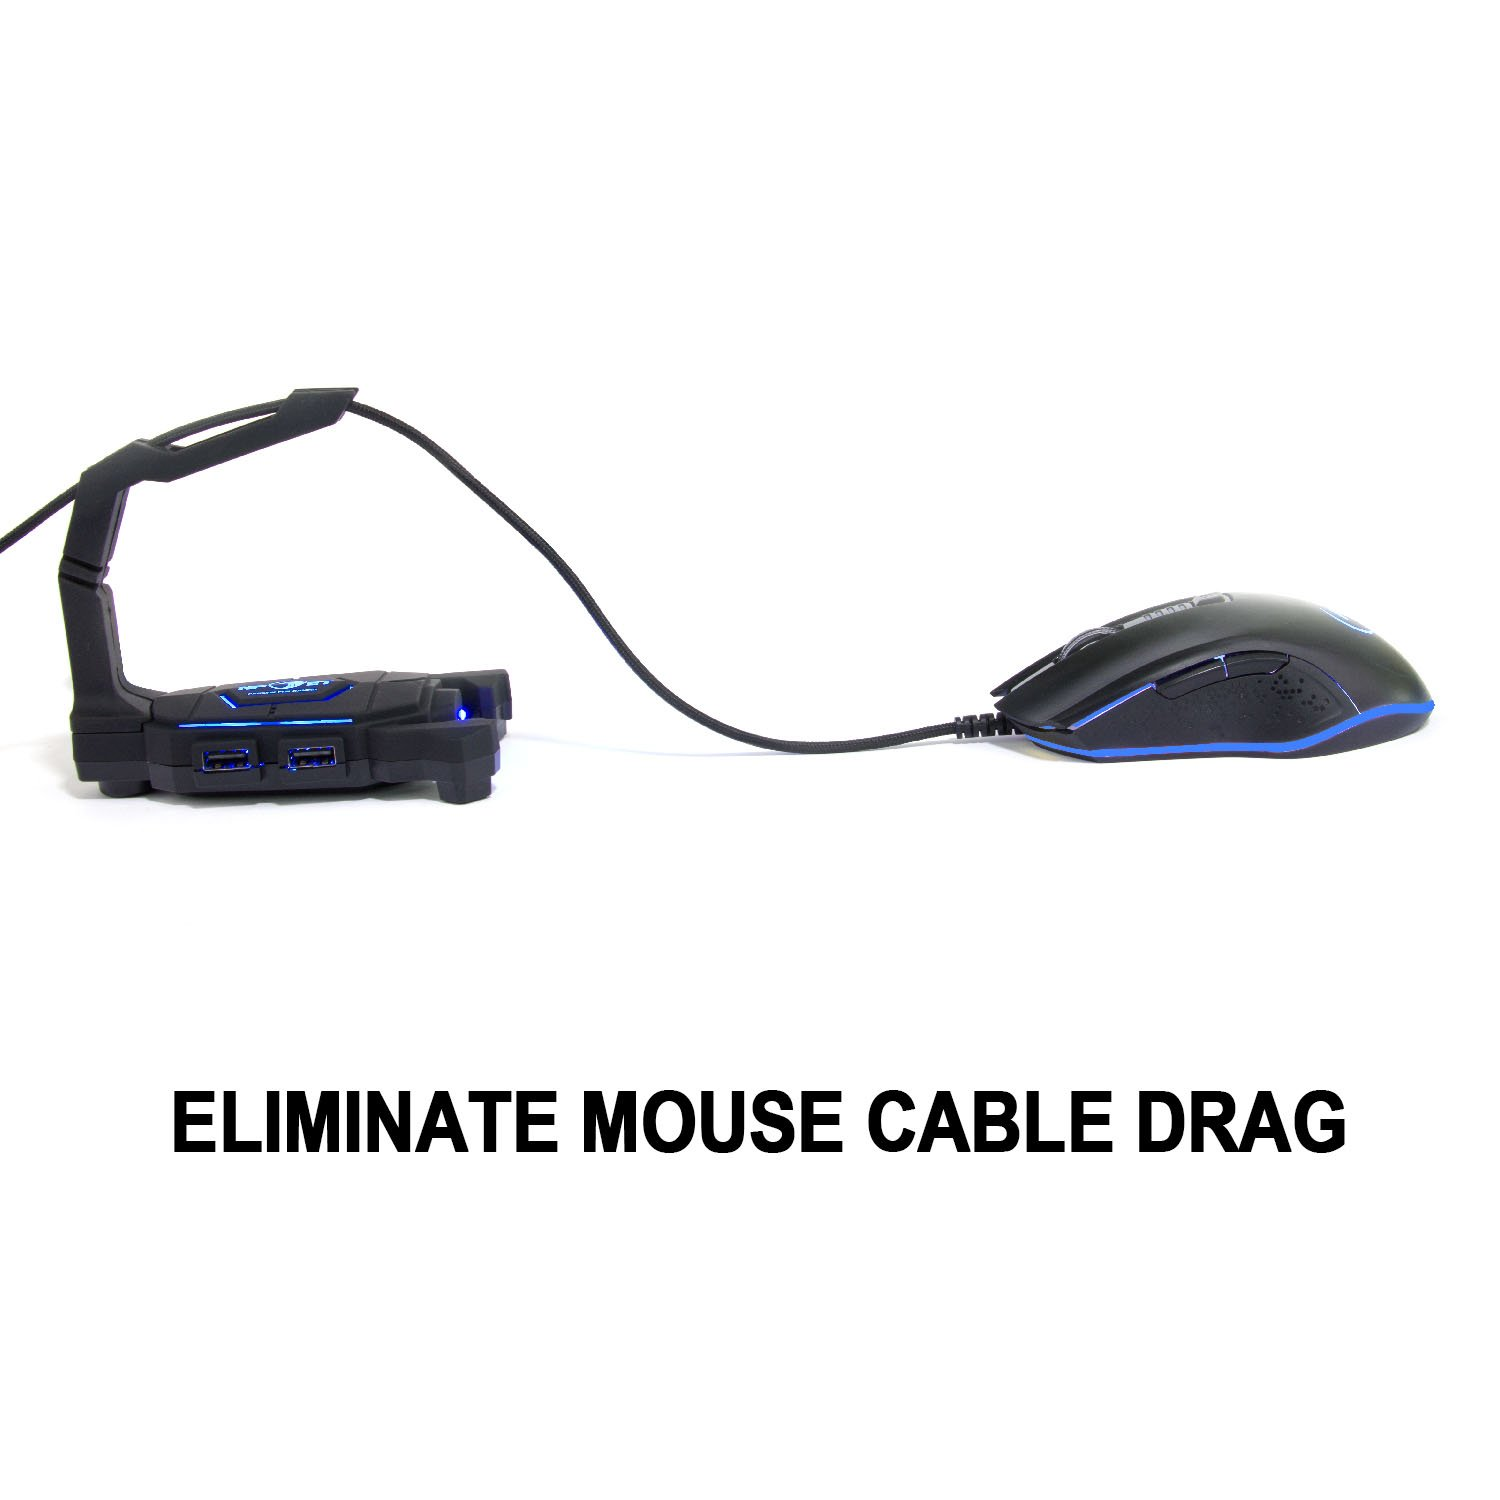 Gaming Mouse BungeeCord Holder with 4-Port USB HUB, NPET H01 LED Lighting Mouse Cable Manager, Non-Slip Rubber Pads Base, Clamping Arrangements, Designed for Pro Esports, Competitive Games by NPET (Image #3)